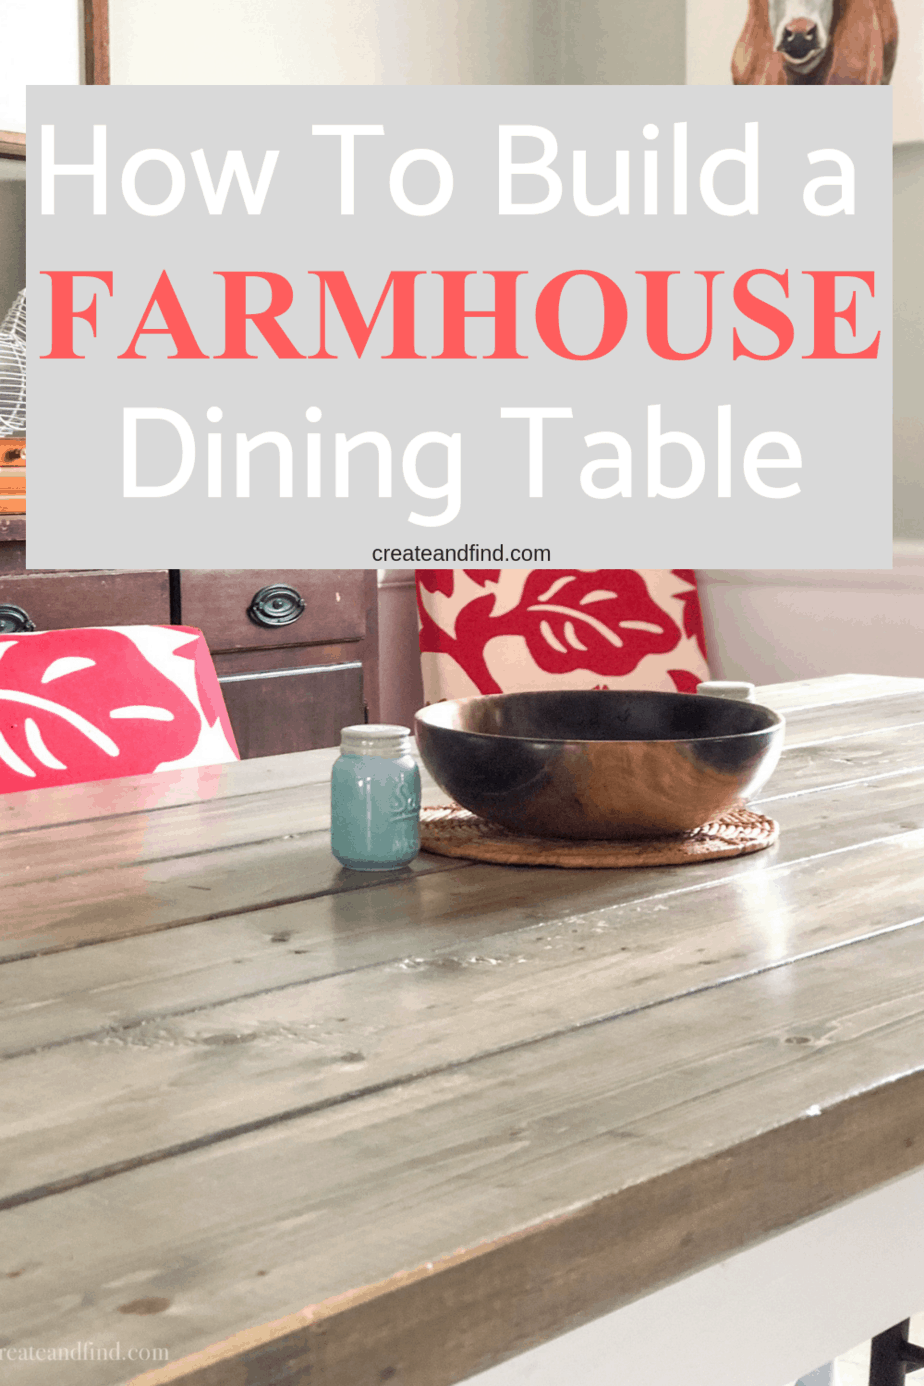 DIY Farmhouse Table - how to build your own dining table #createandfind #farmhousestyle #diyfarmhousetable